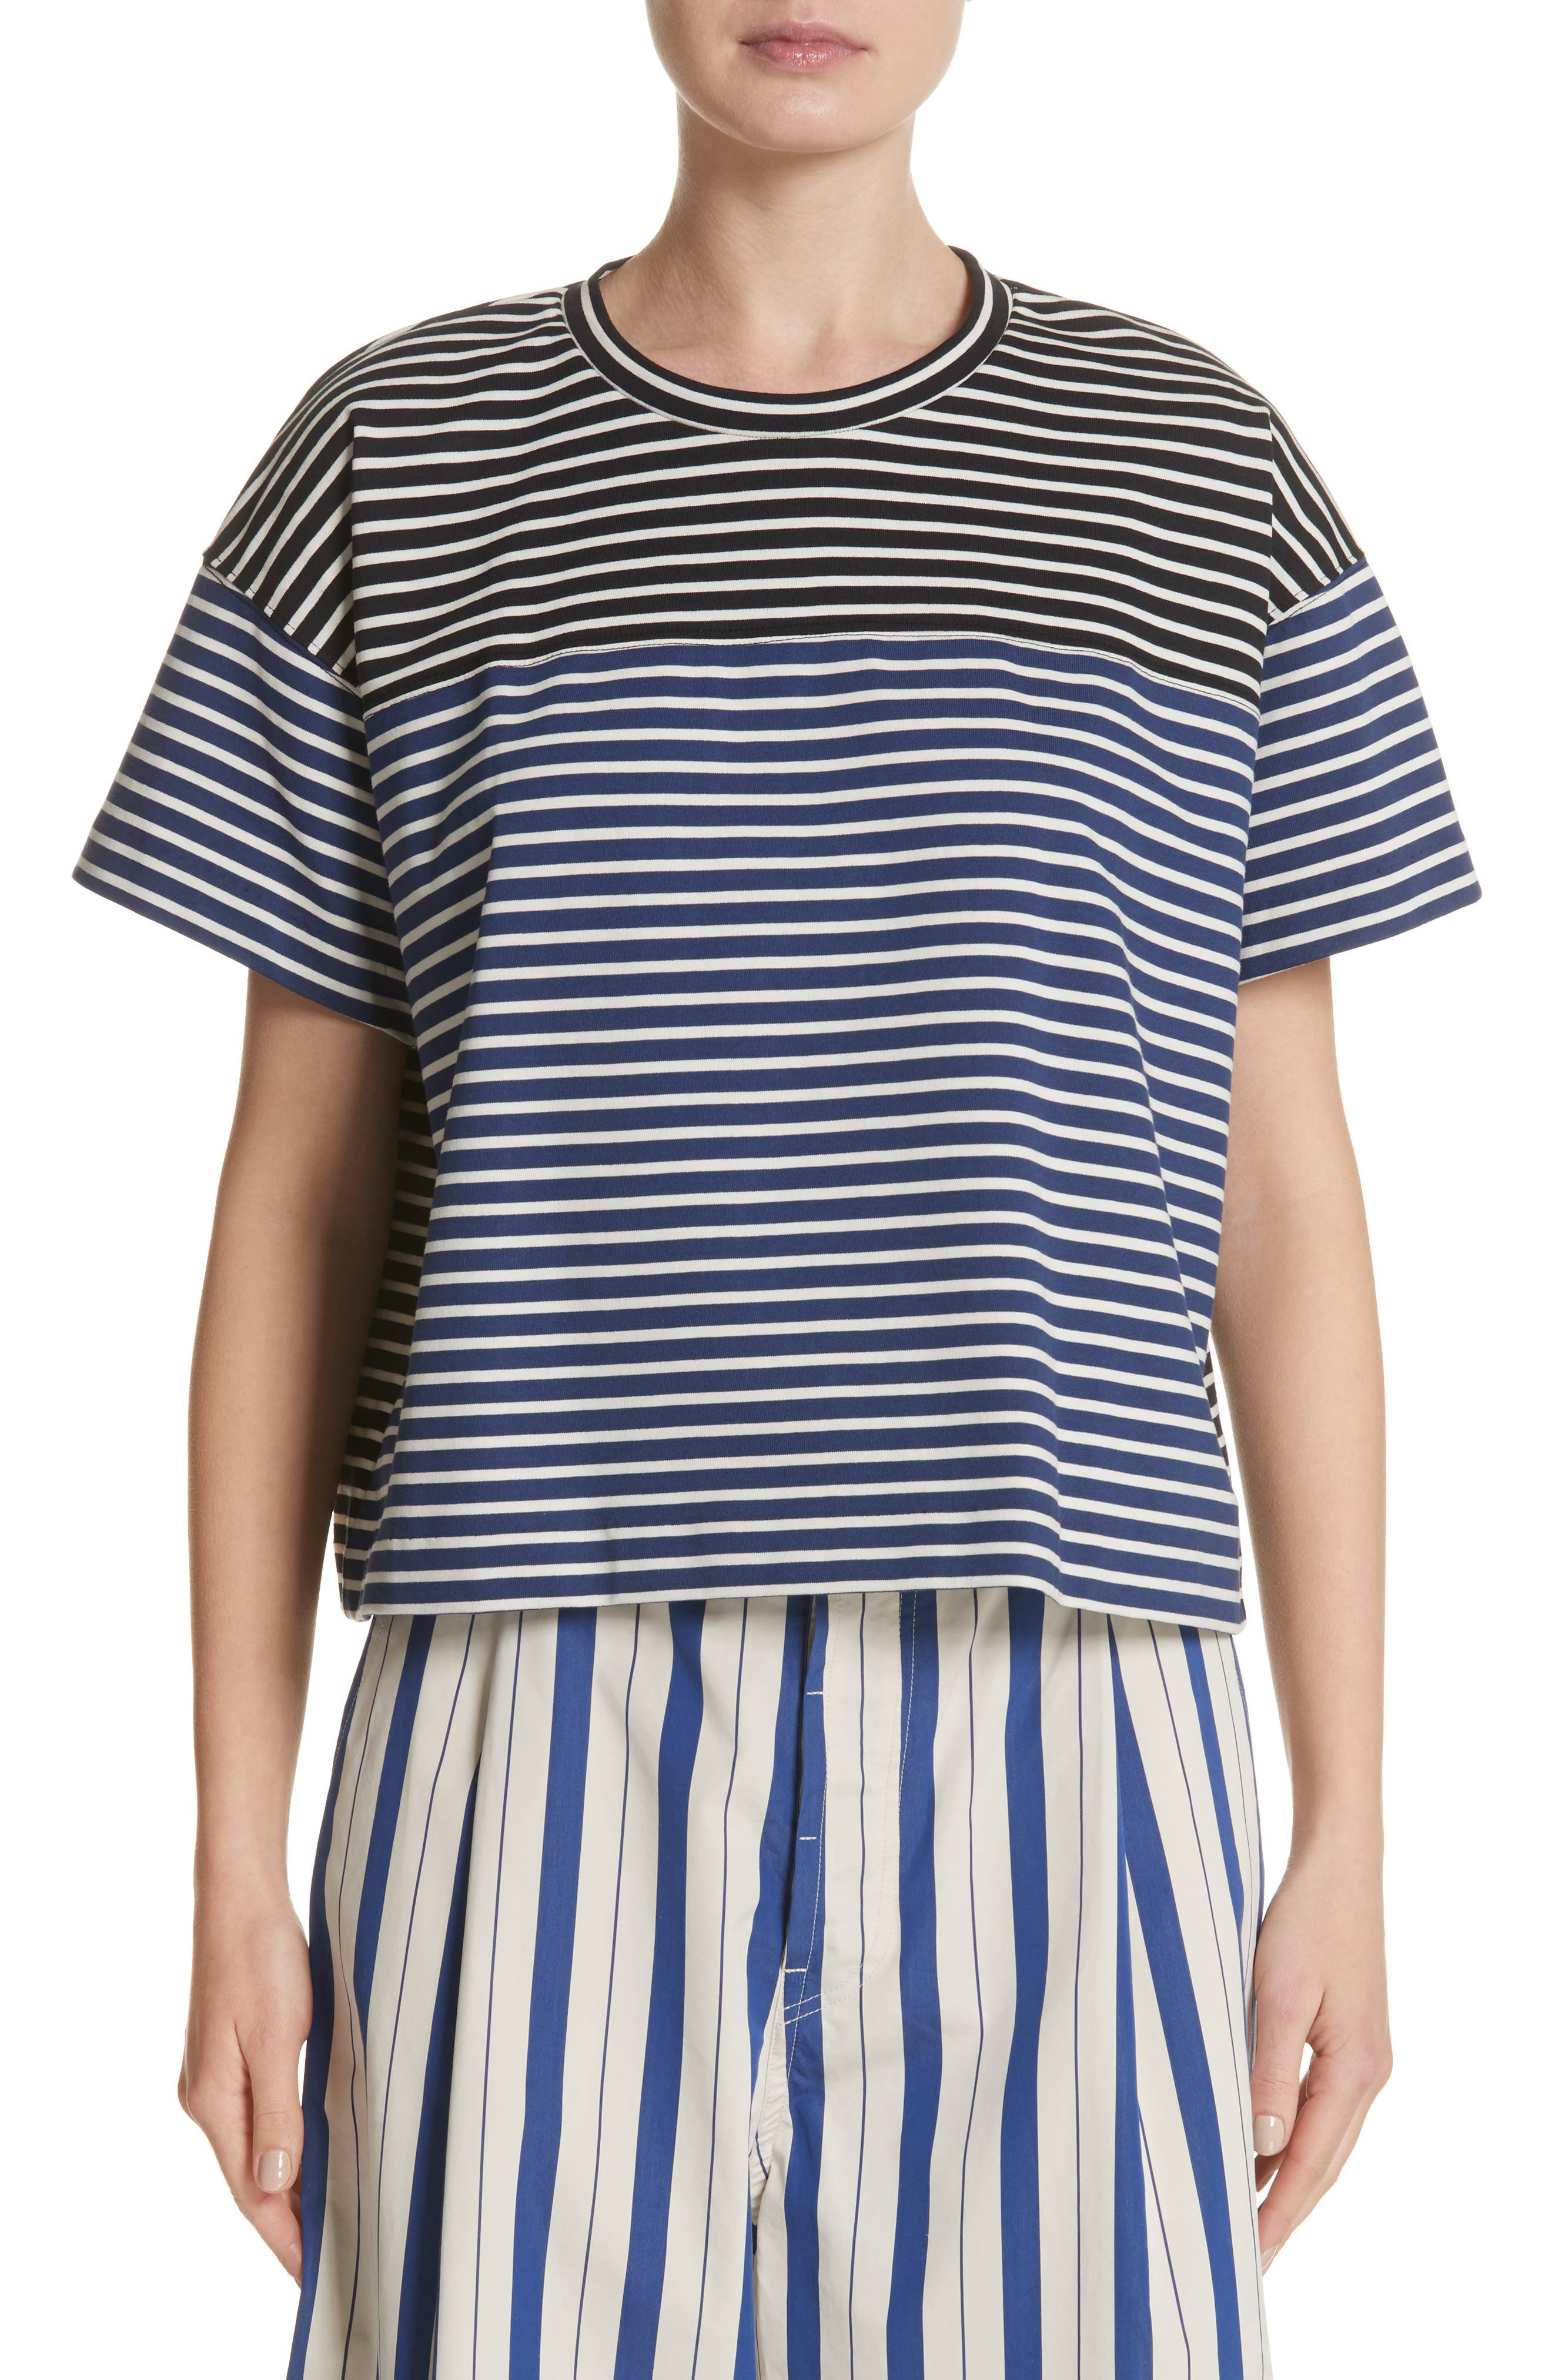 Nautical Stripe Tee,                         Main,                         color, 1 Navy/ Blumarine